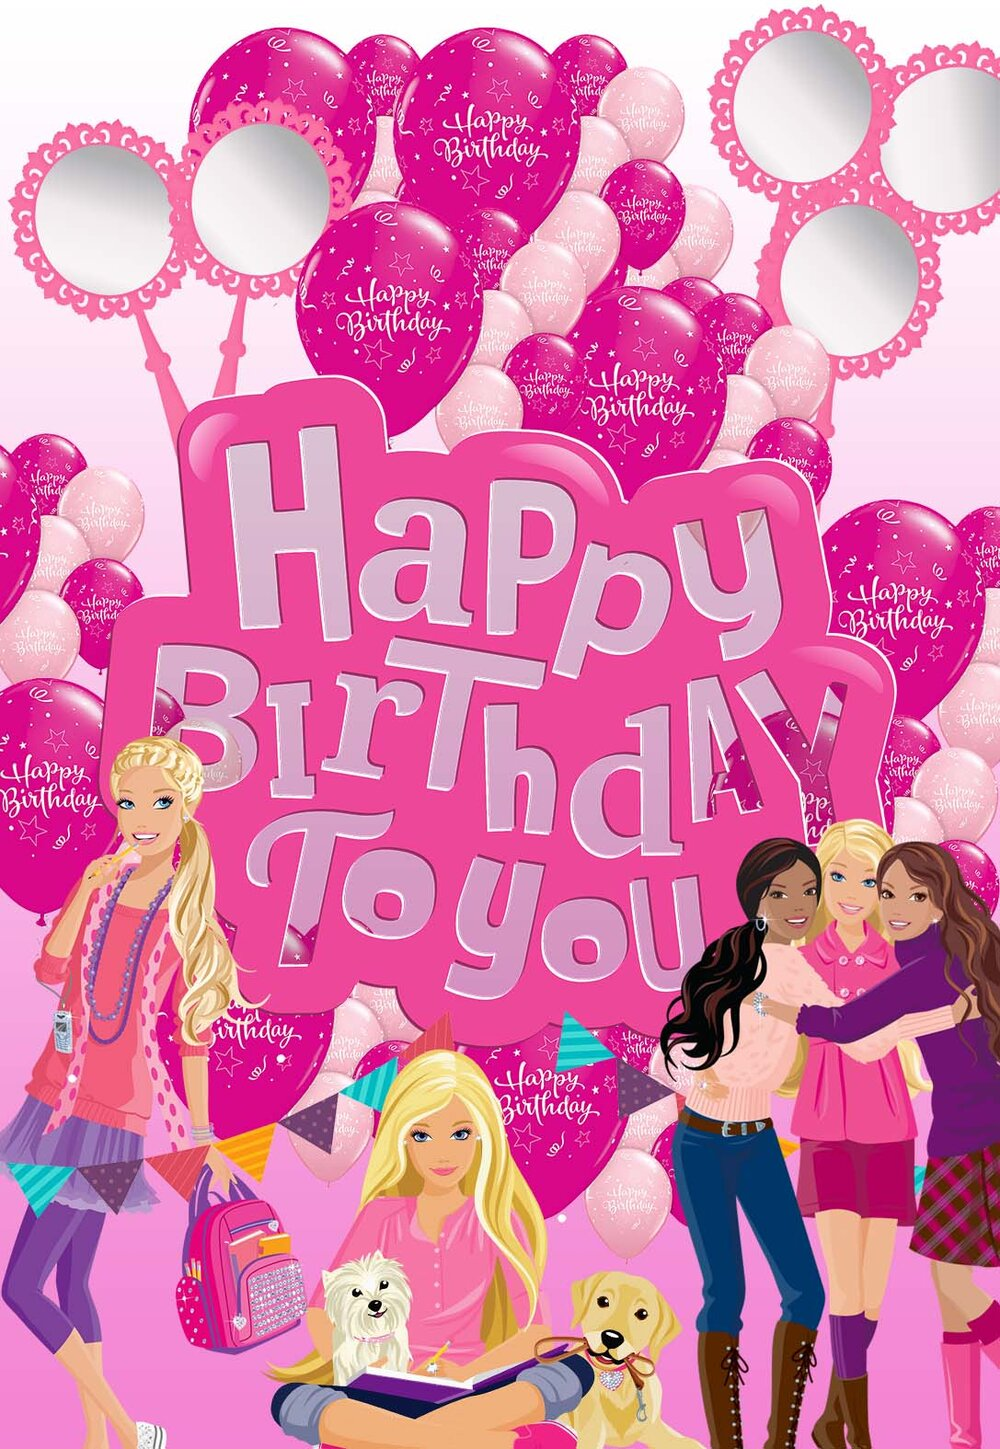 Free Printable Birthday Cards For Girls Quick Easy Printbirthday Cards